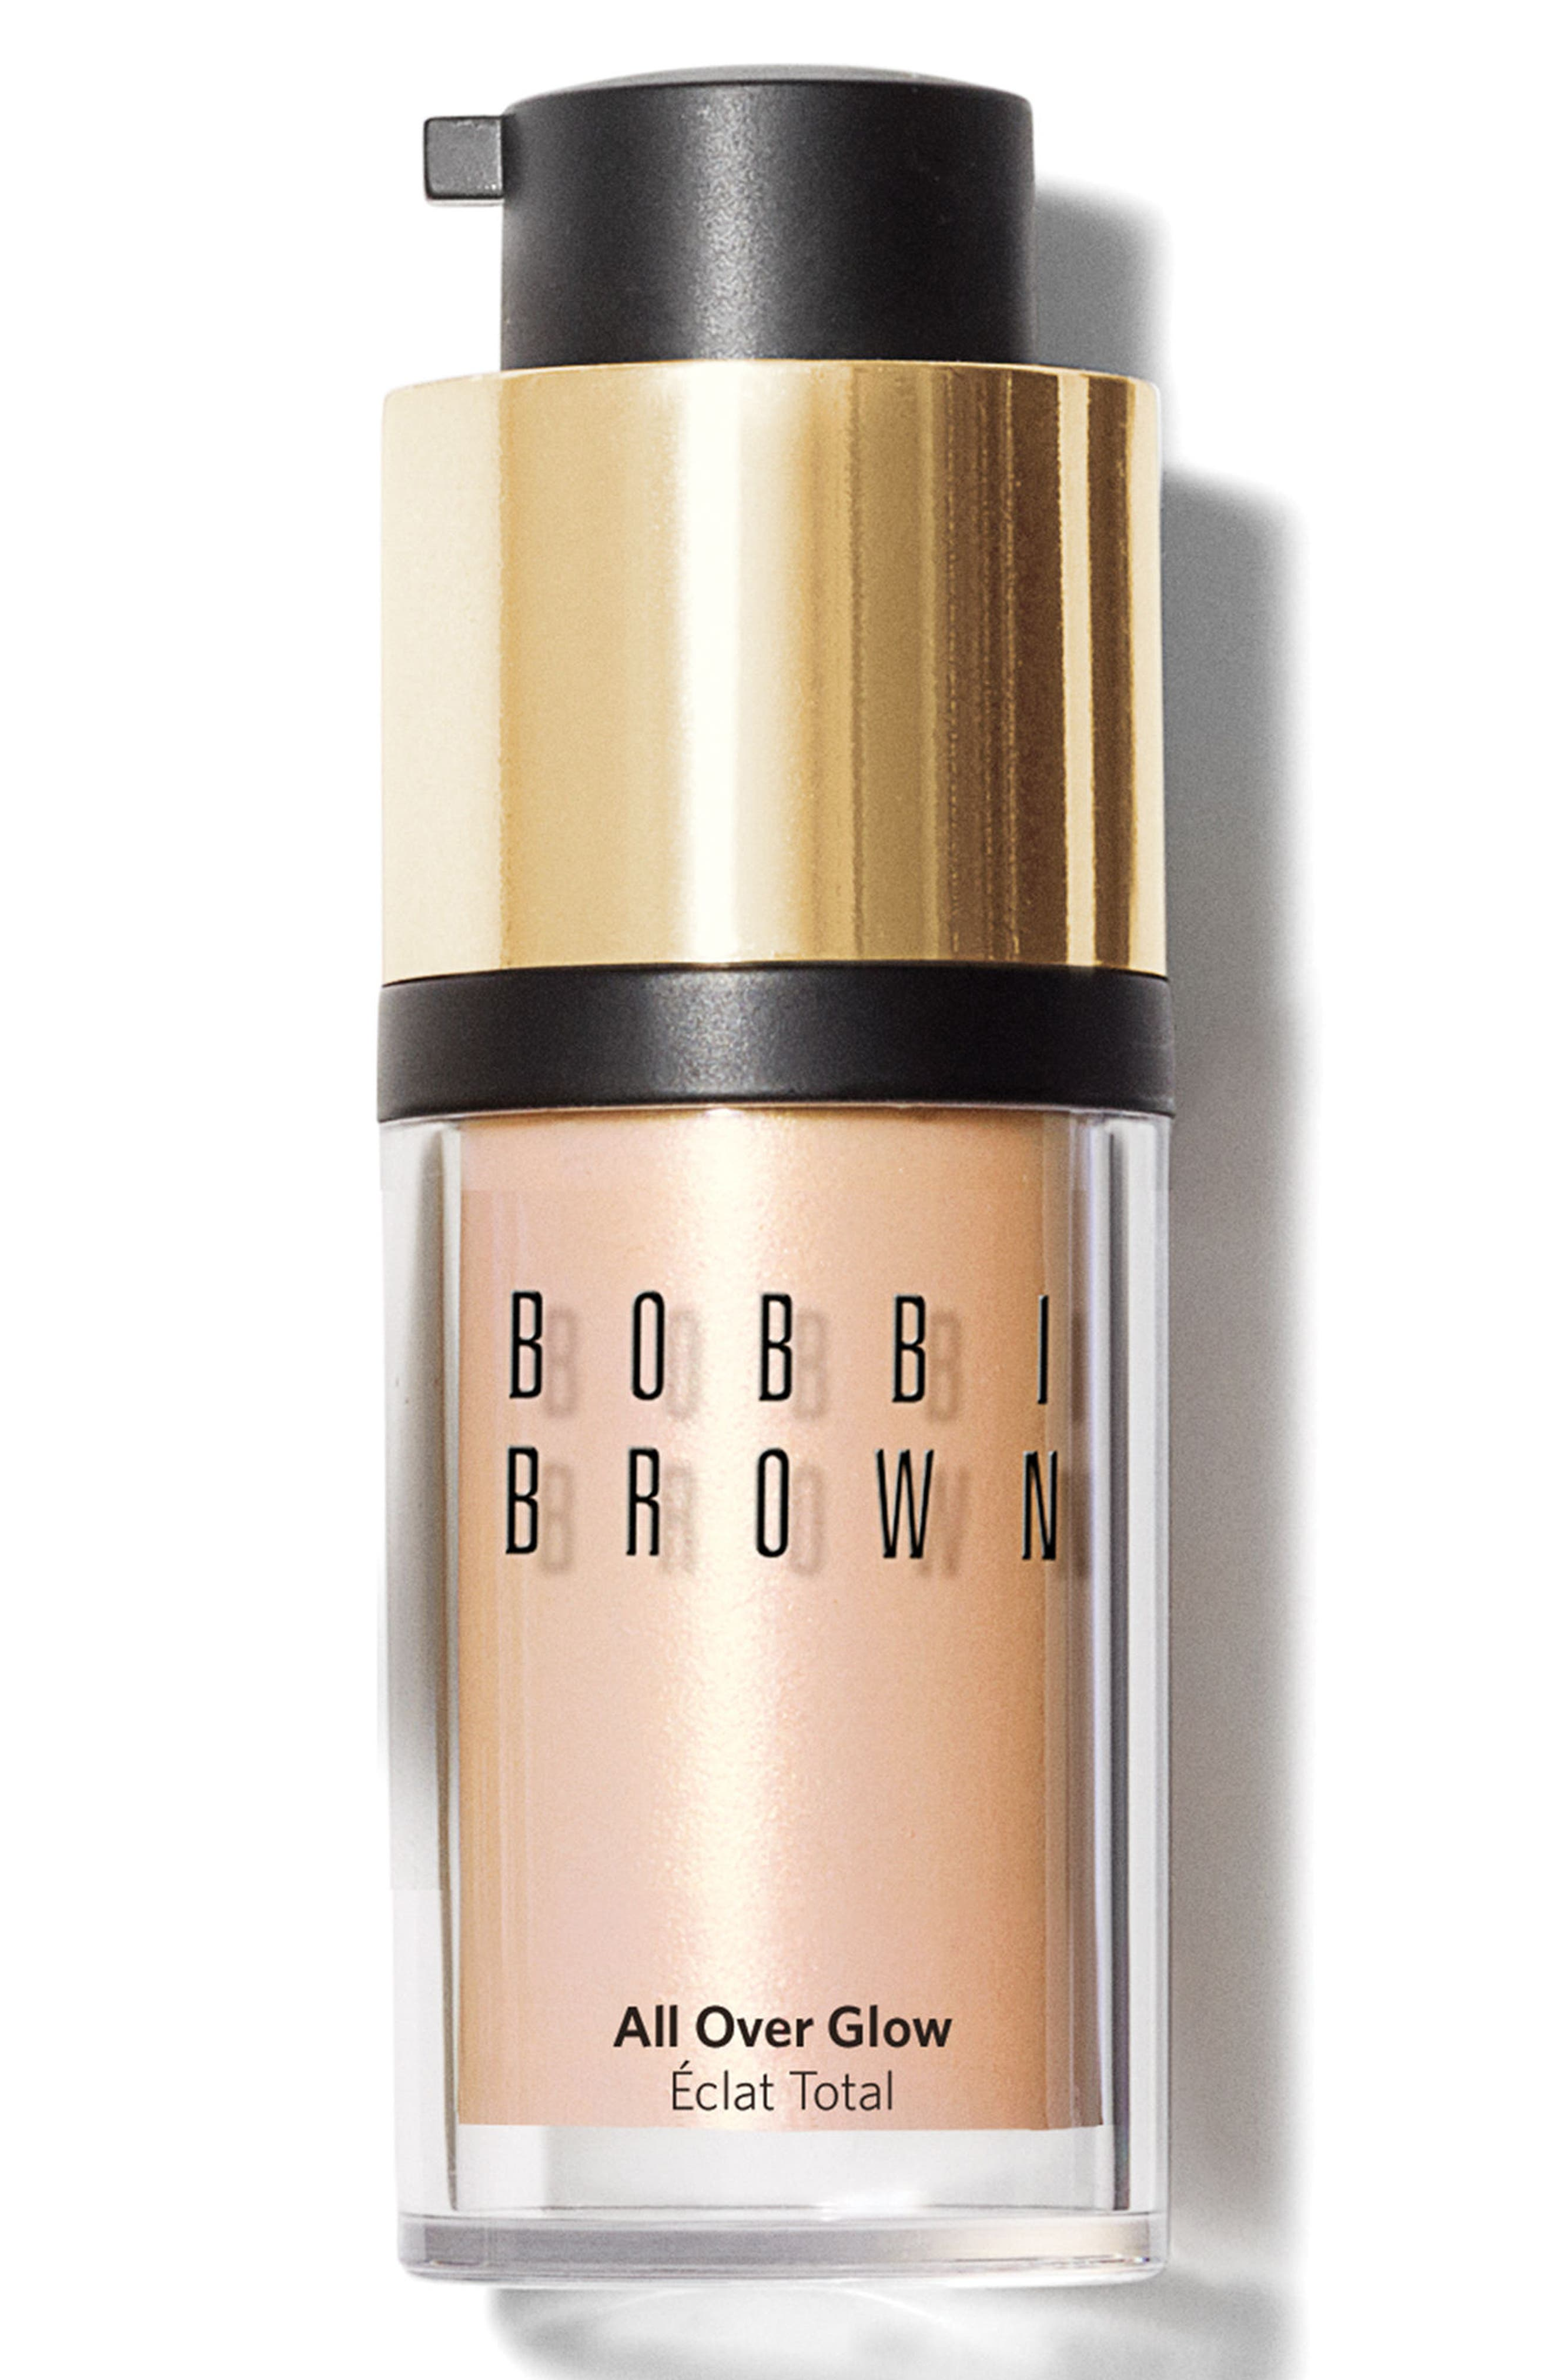 Bobbi Brown All Over Glow